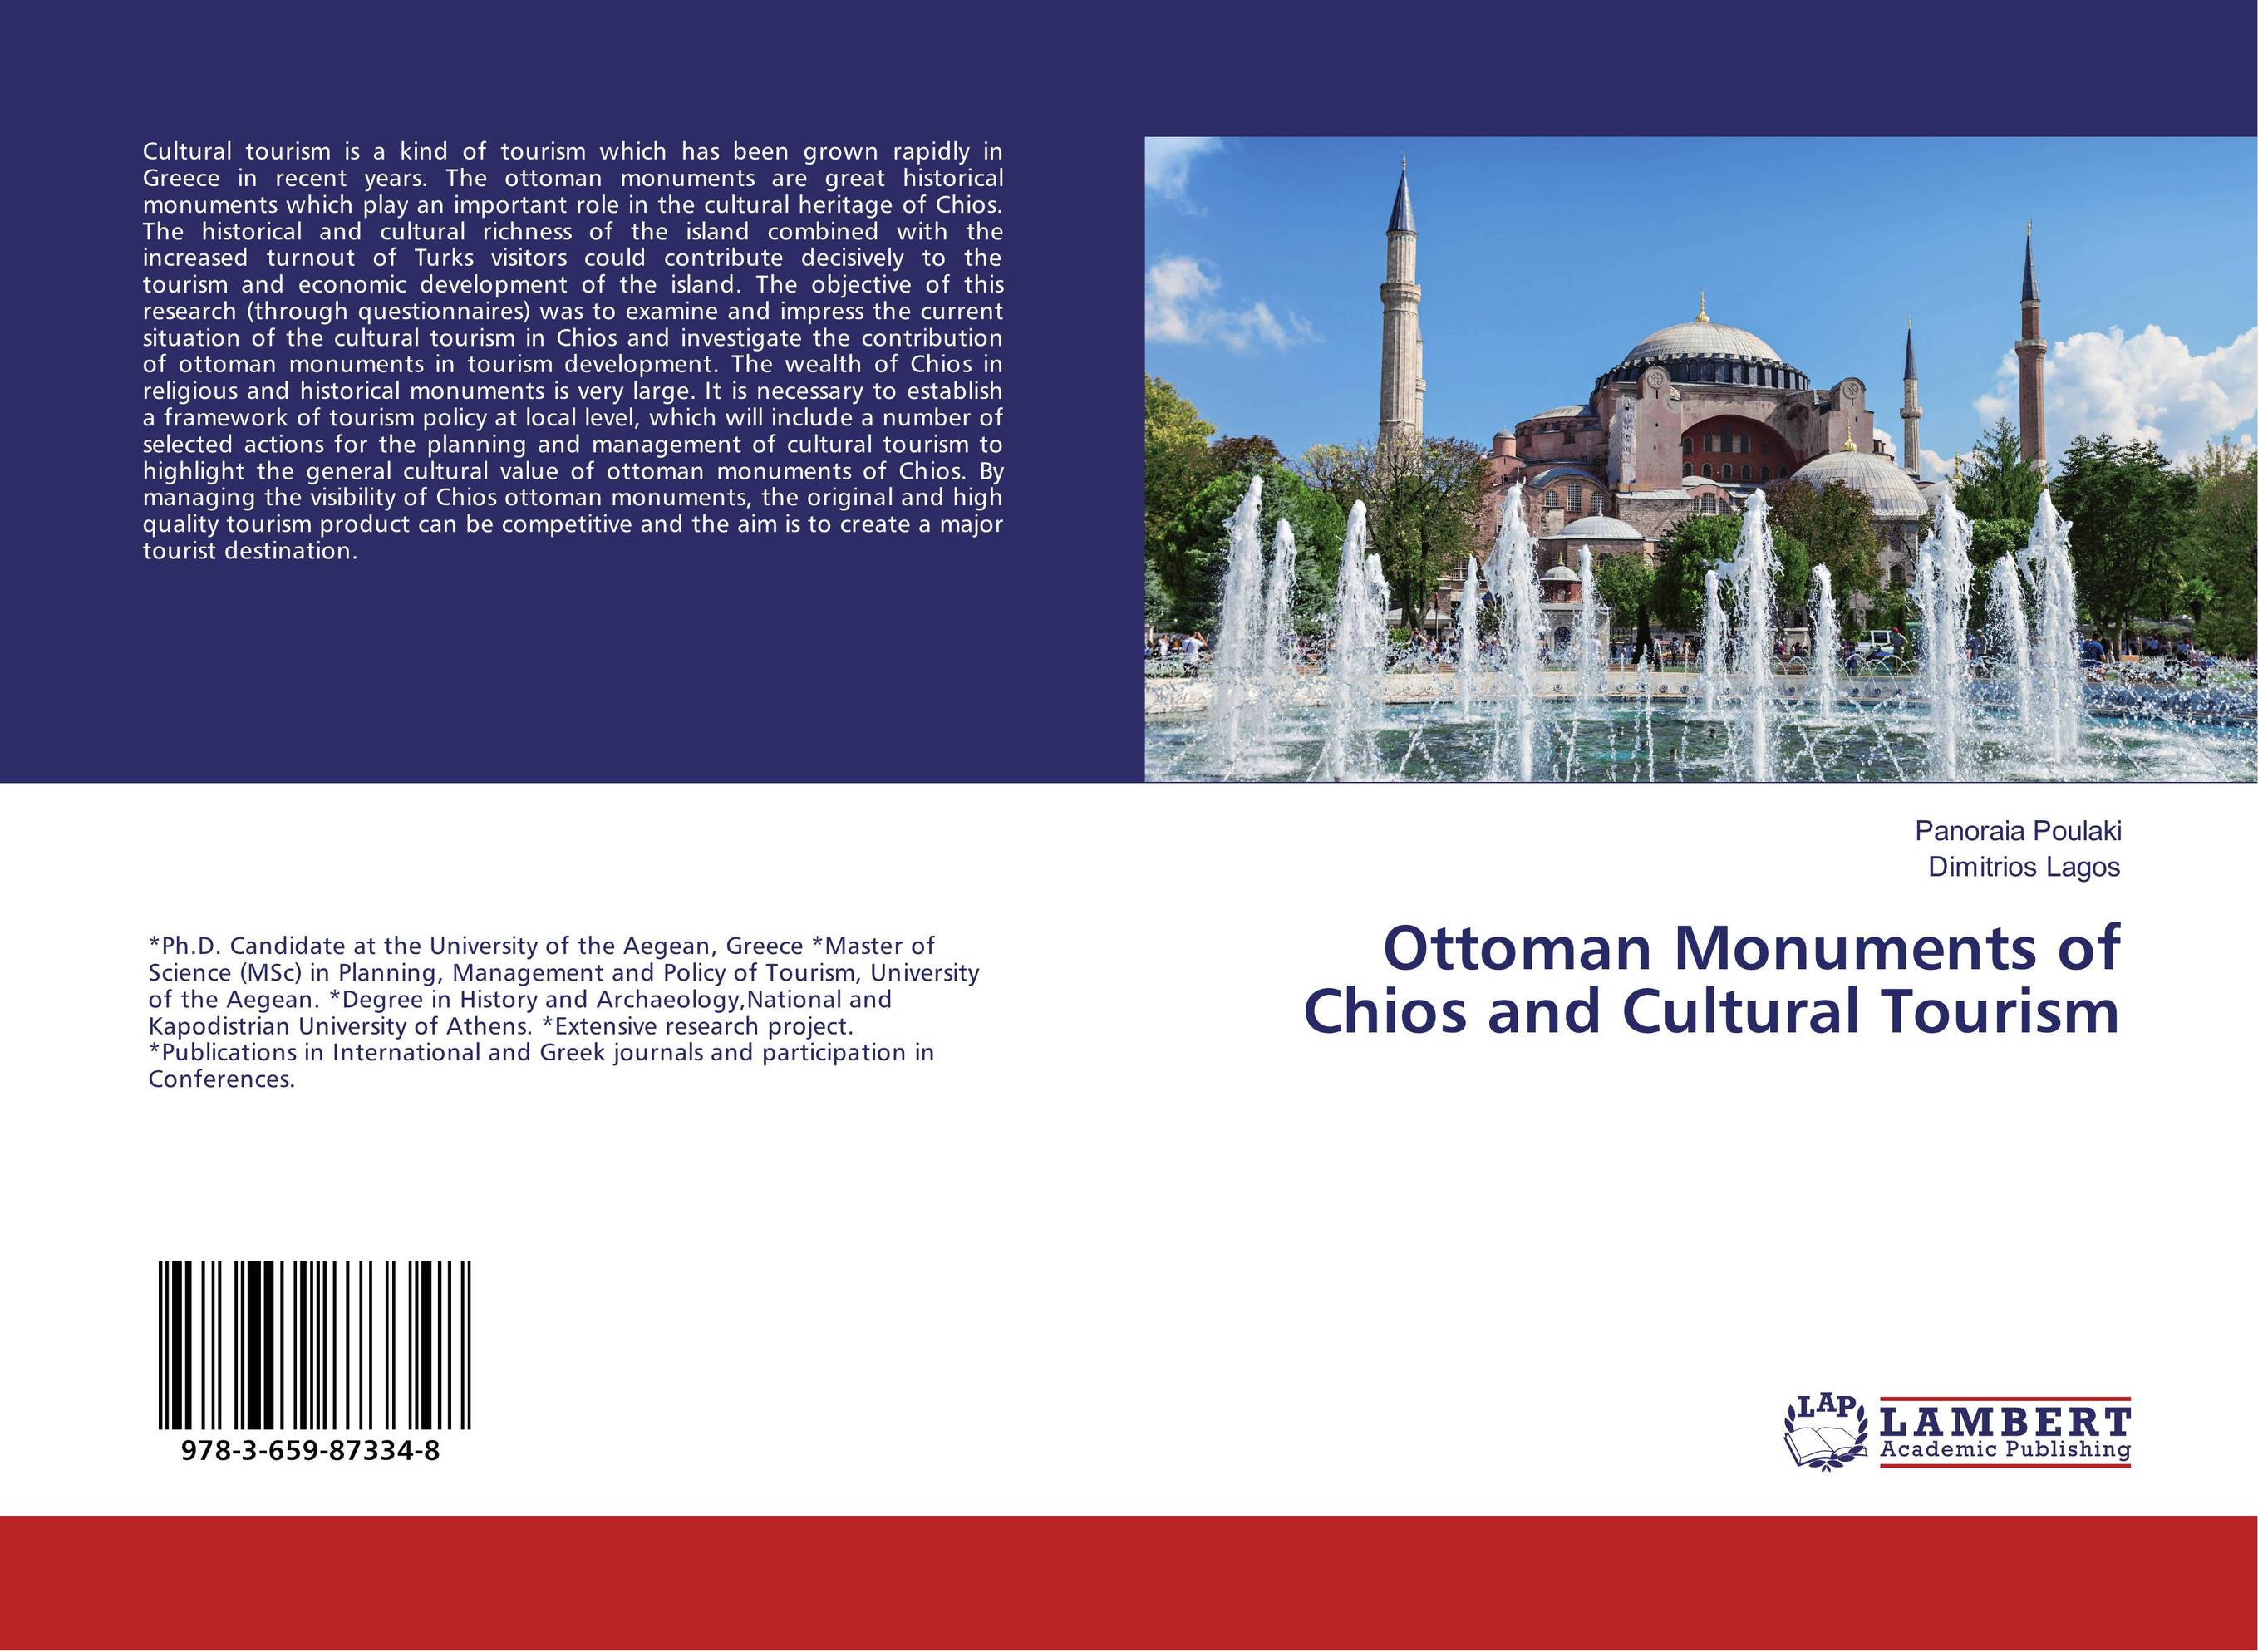 Ottoman Monuments of Chios and Cultural Tourism minor monuments